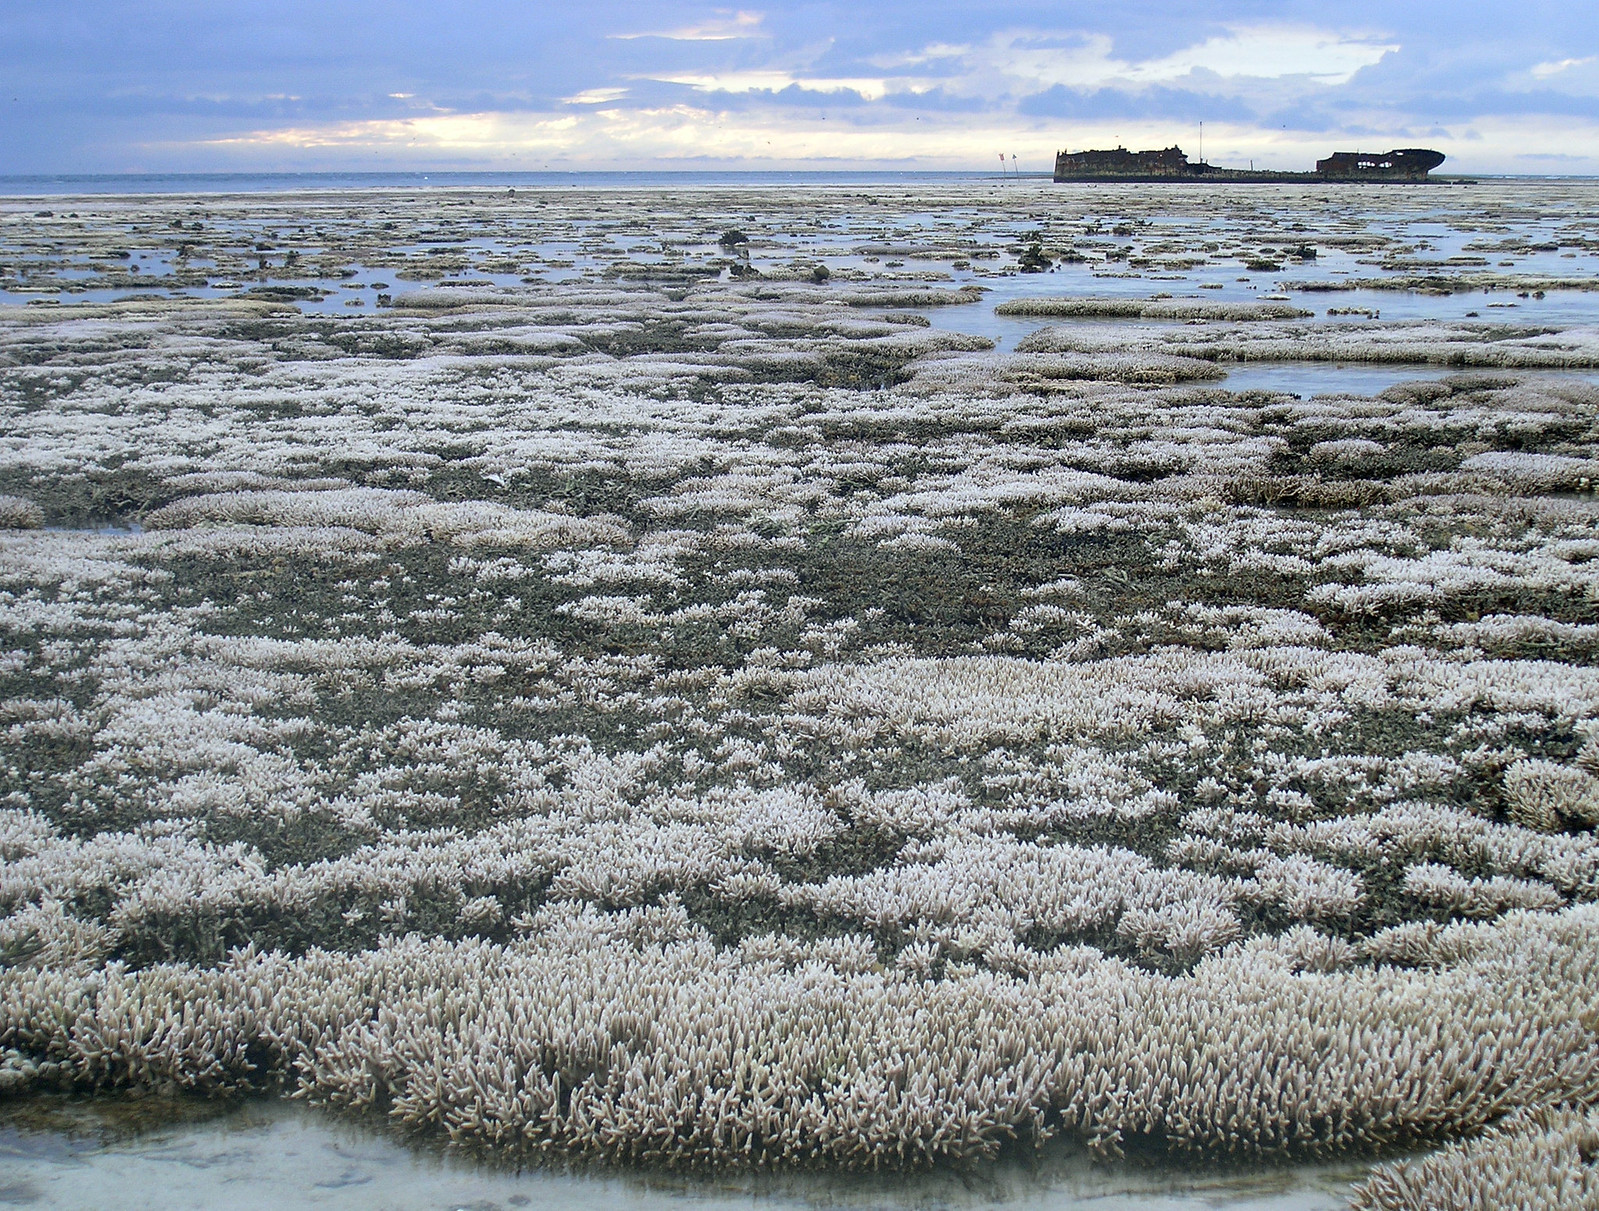 Bleached coral: A major coral bleaching event took place on this part of the Great Barrier Reef in Australia. Photo: Oregon State University